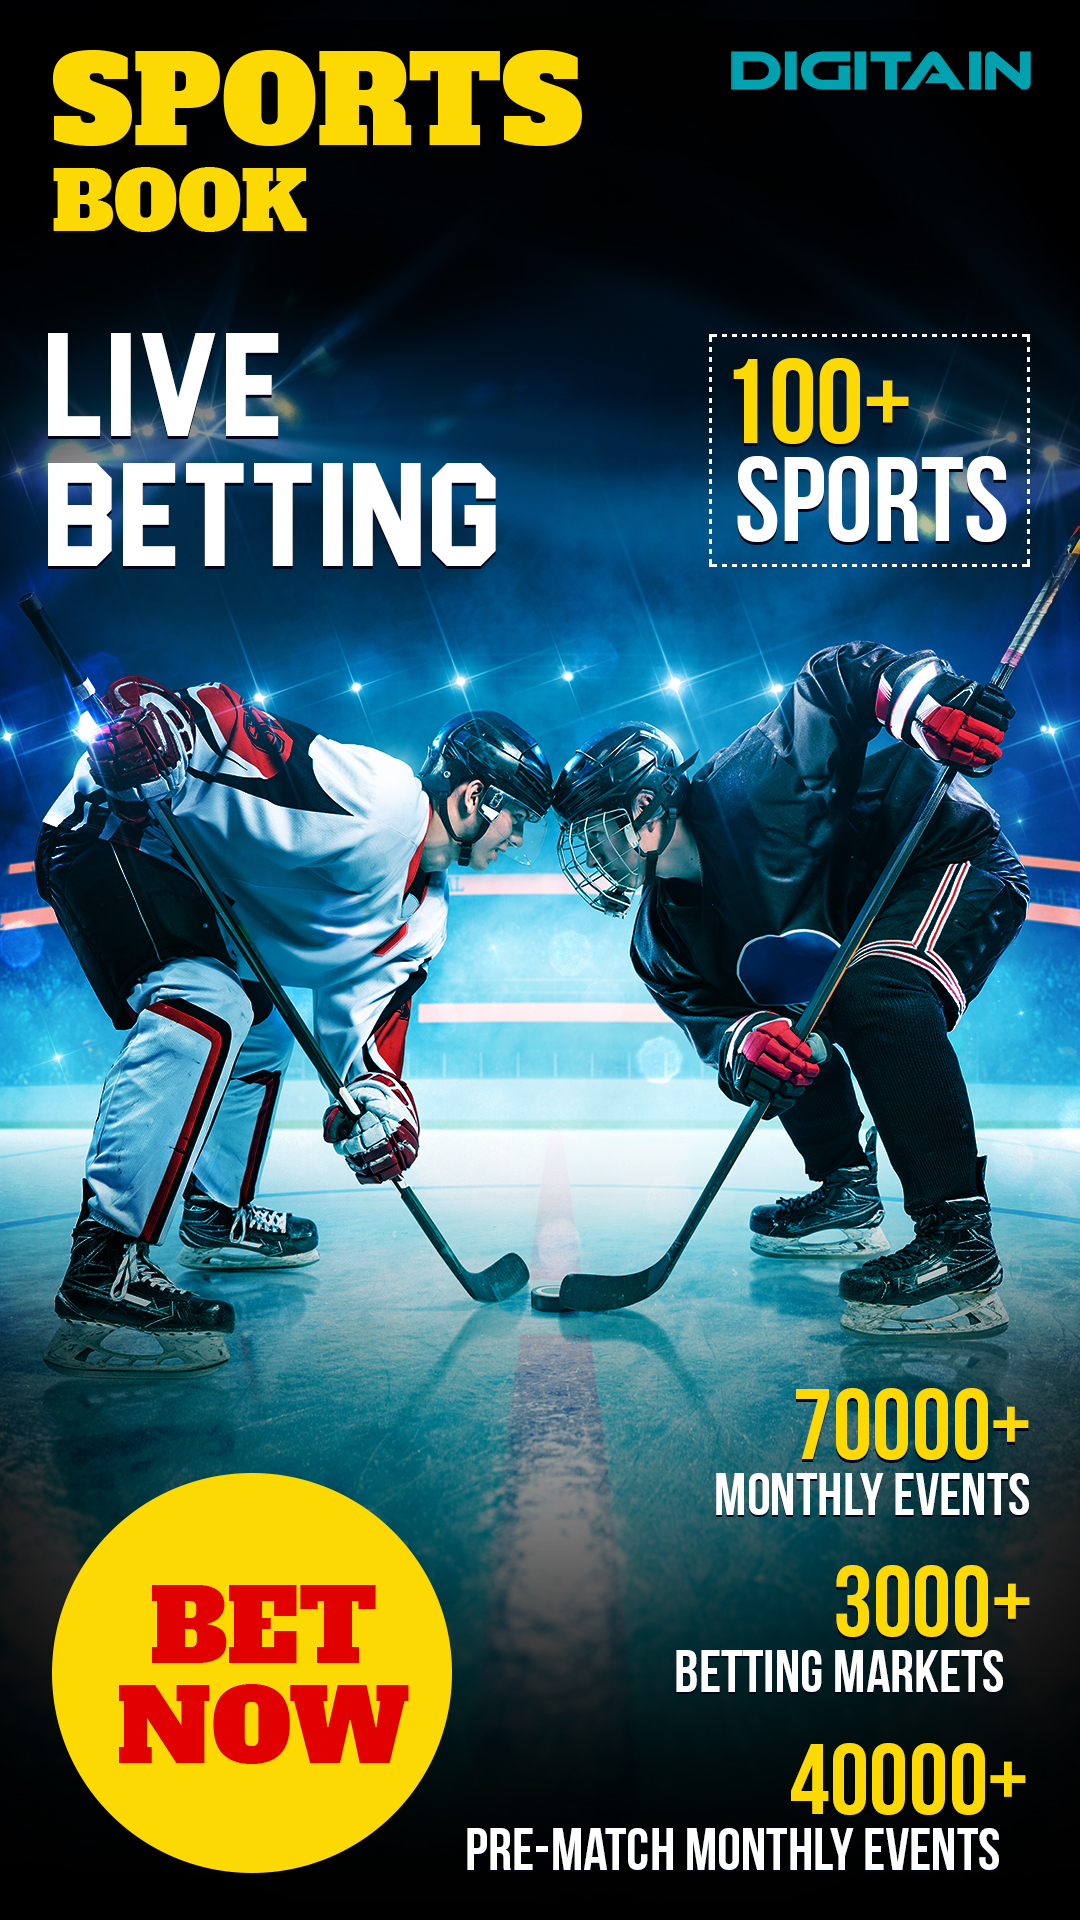 Digitain Sportsbook